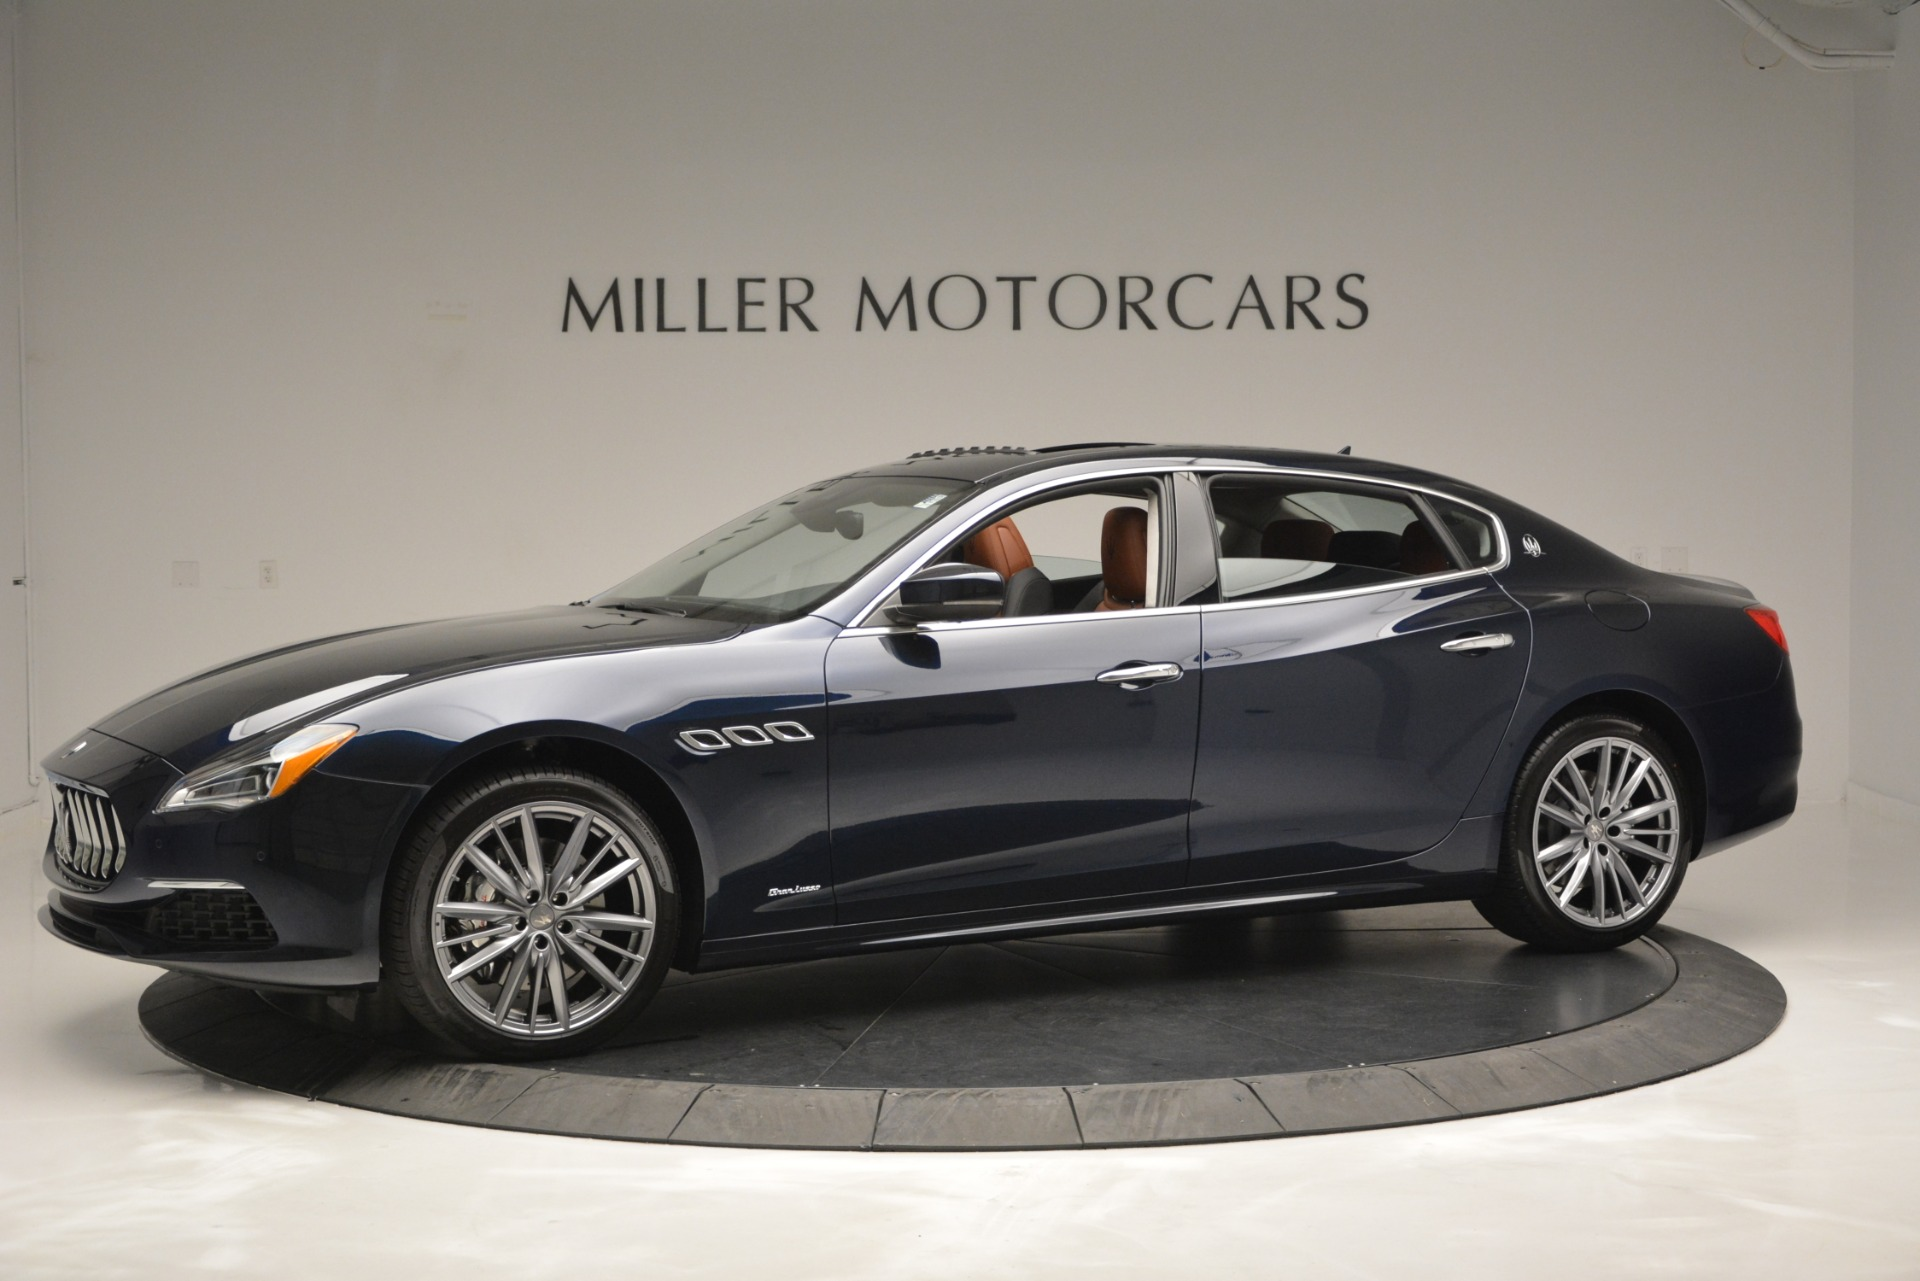 New 2019 Maserati Quattroporte S Q4 GranLusso Edizione Nobile For Sale In Greenwich, CT 2898_p3